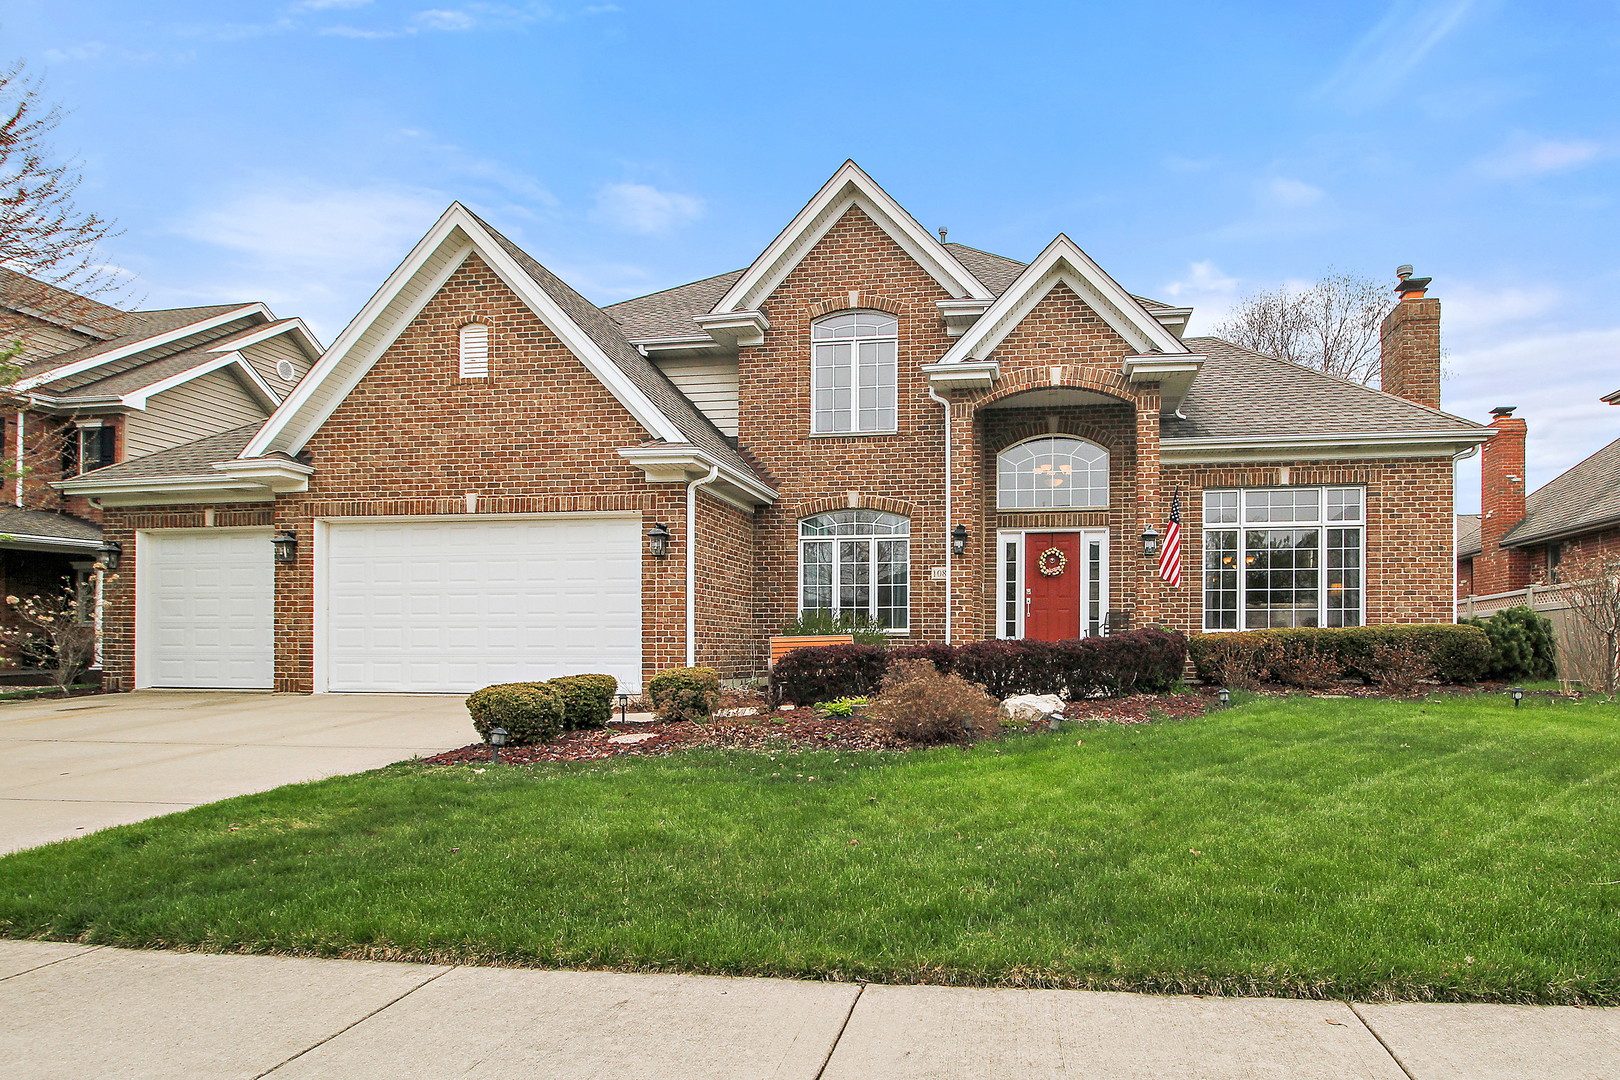 10828 Caribou Lane, Orland Park in Cook County, IL 60467 Home for Sale